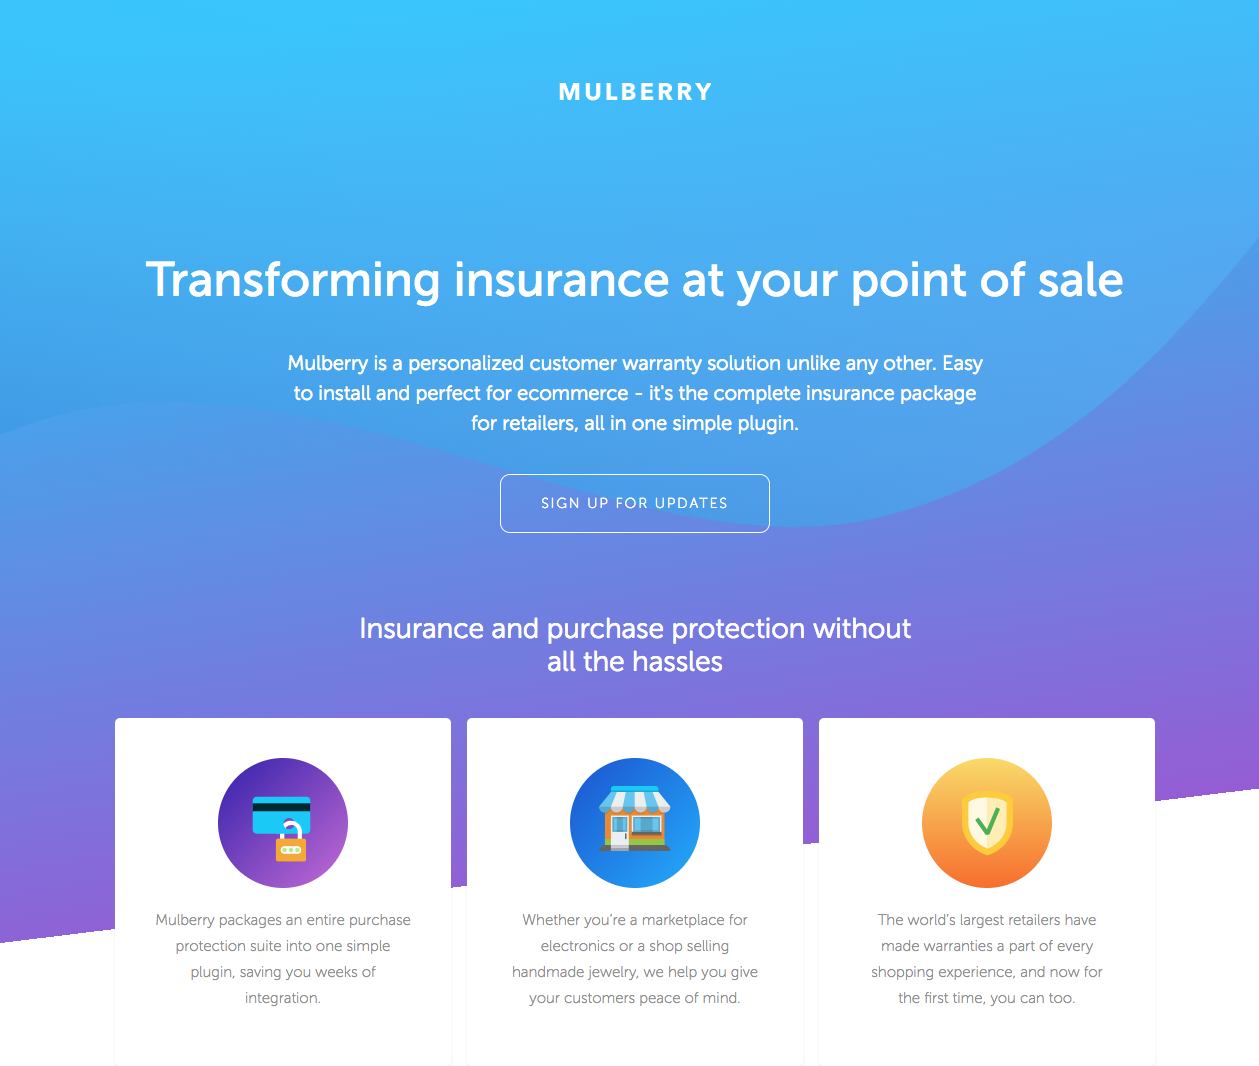 New Entrant Looks to Transform Insurance at POS